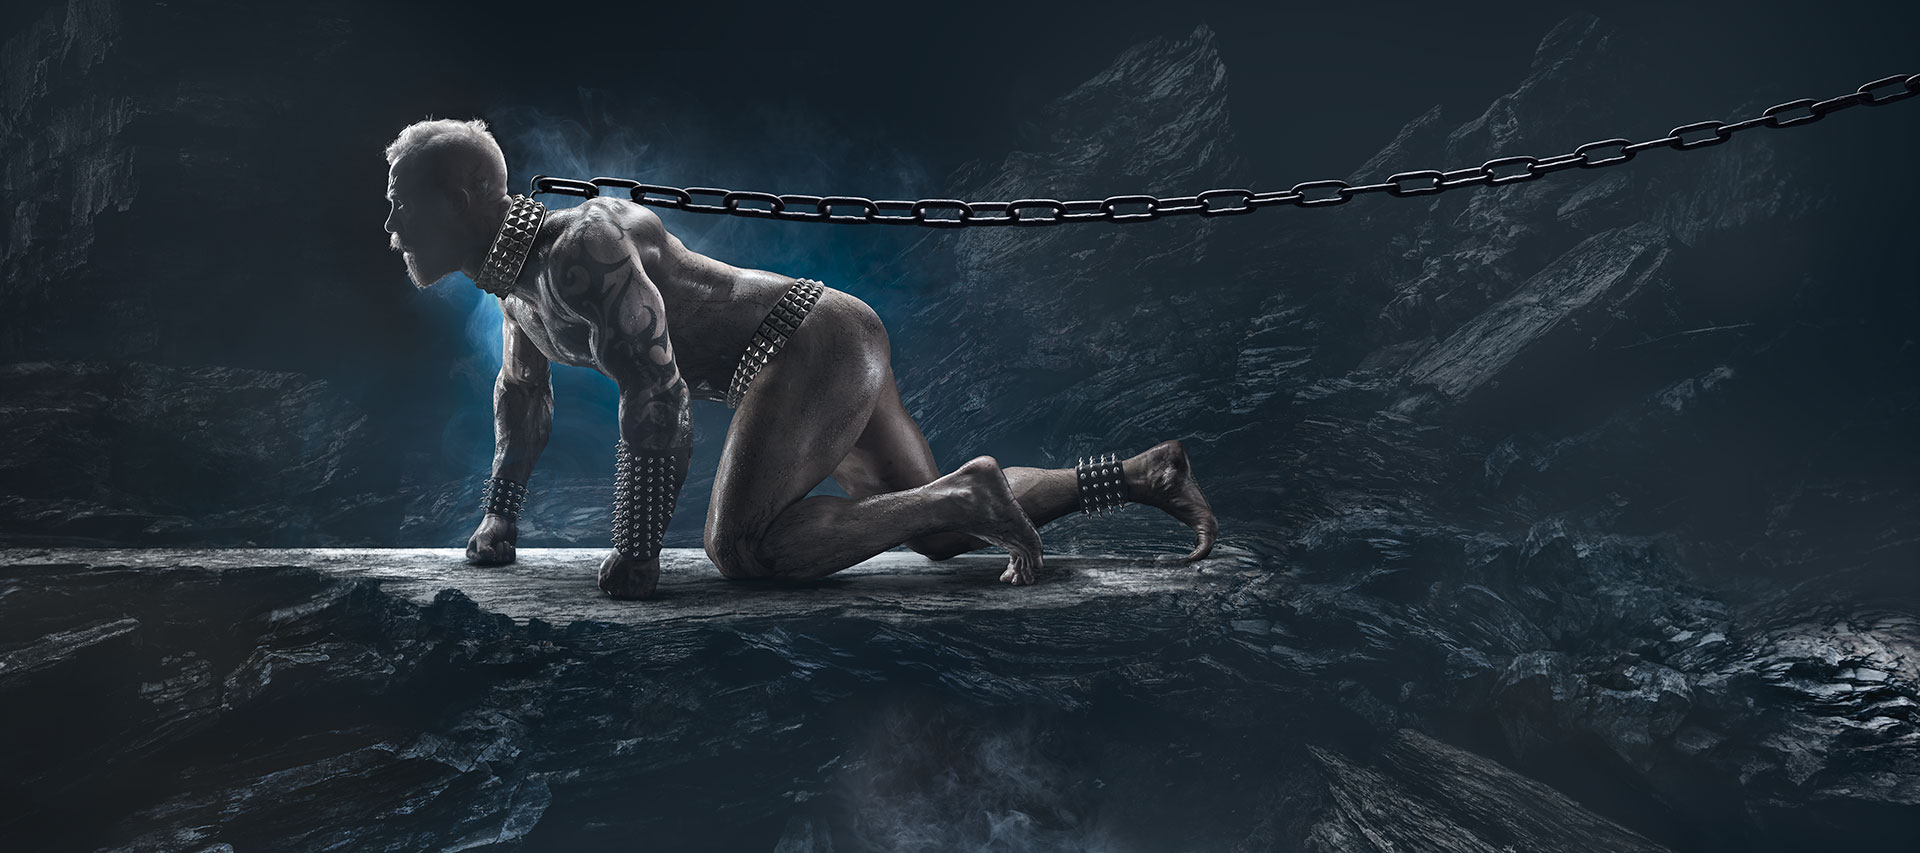 digital art where A naked muscular tattooed man imprisoned in a chain around his neck.